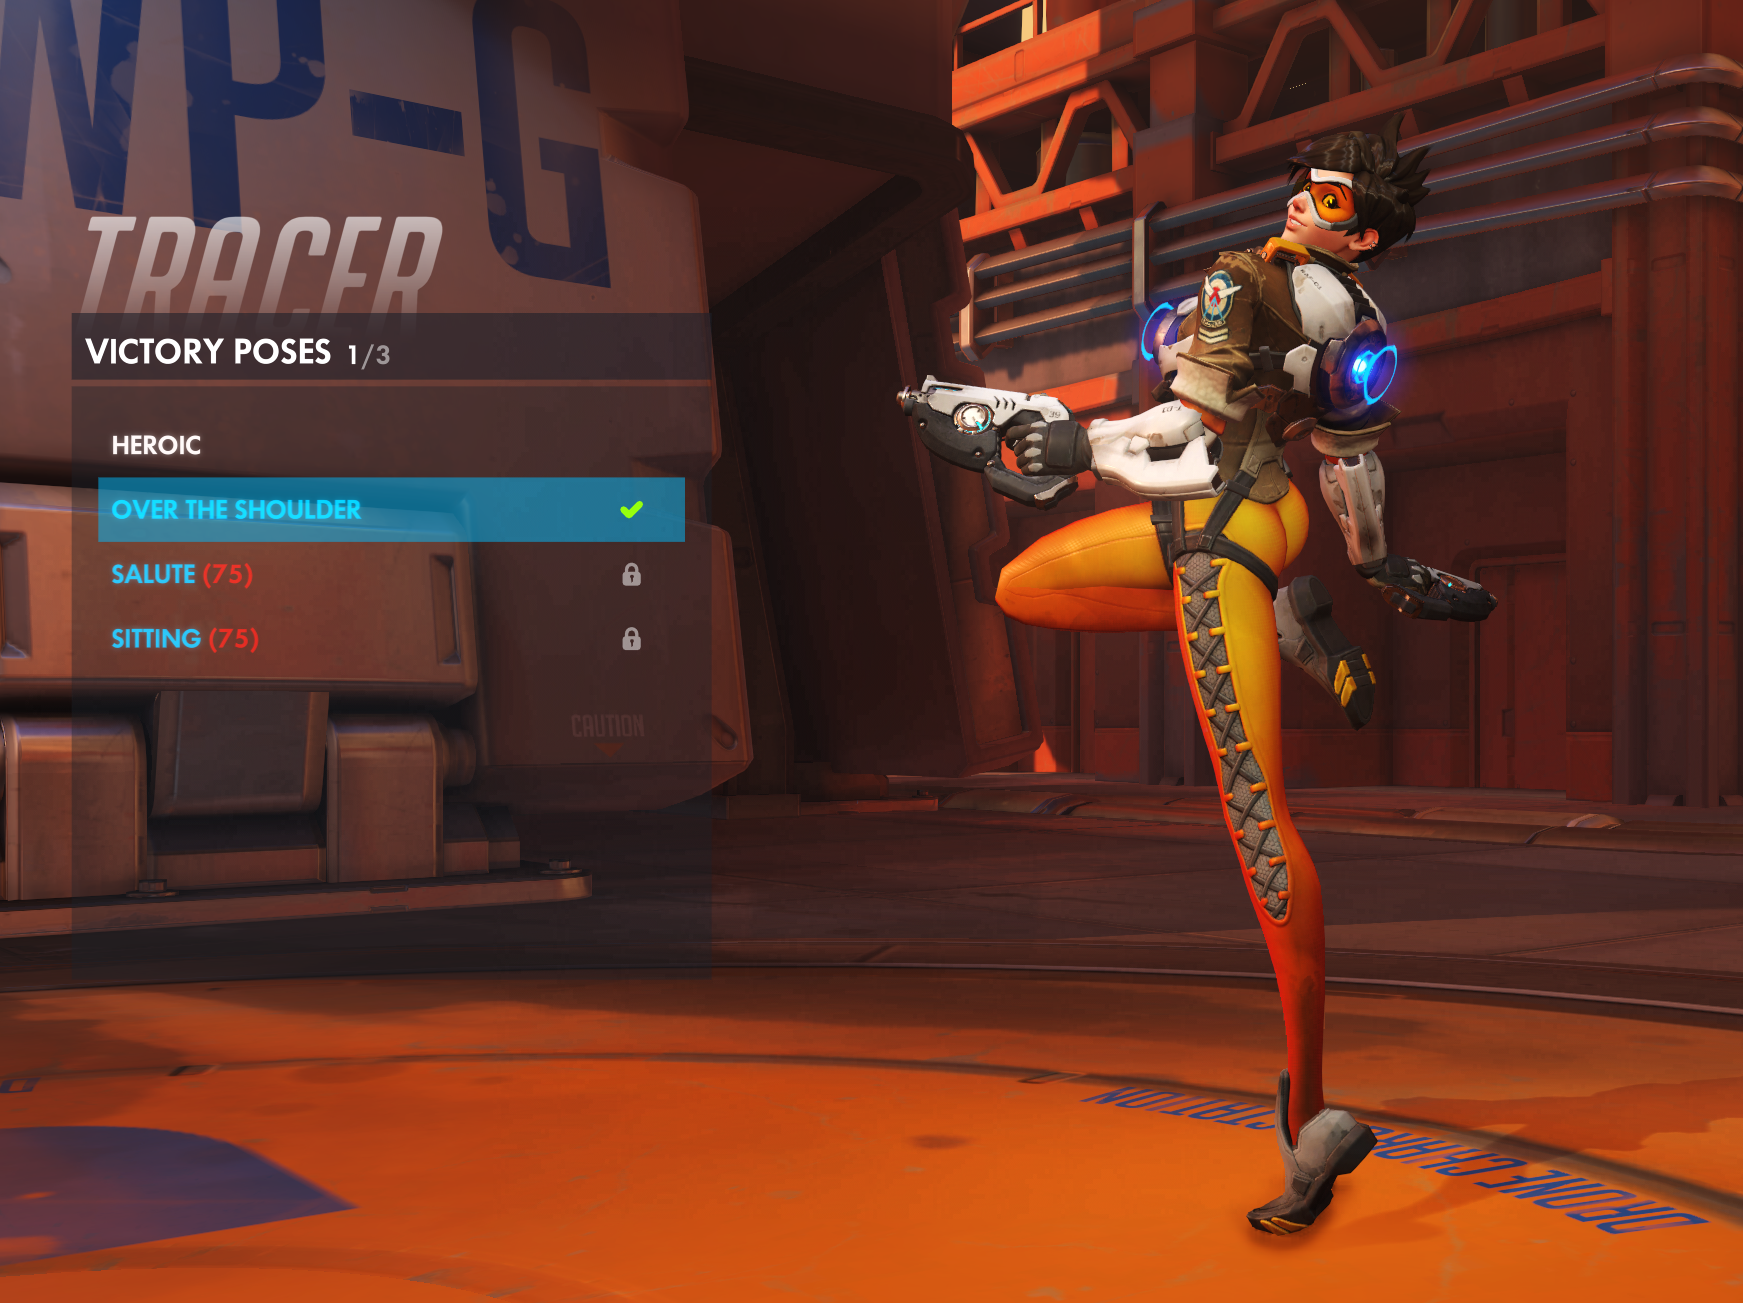 Tracer New Pose